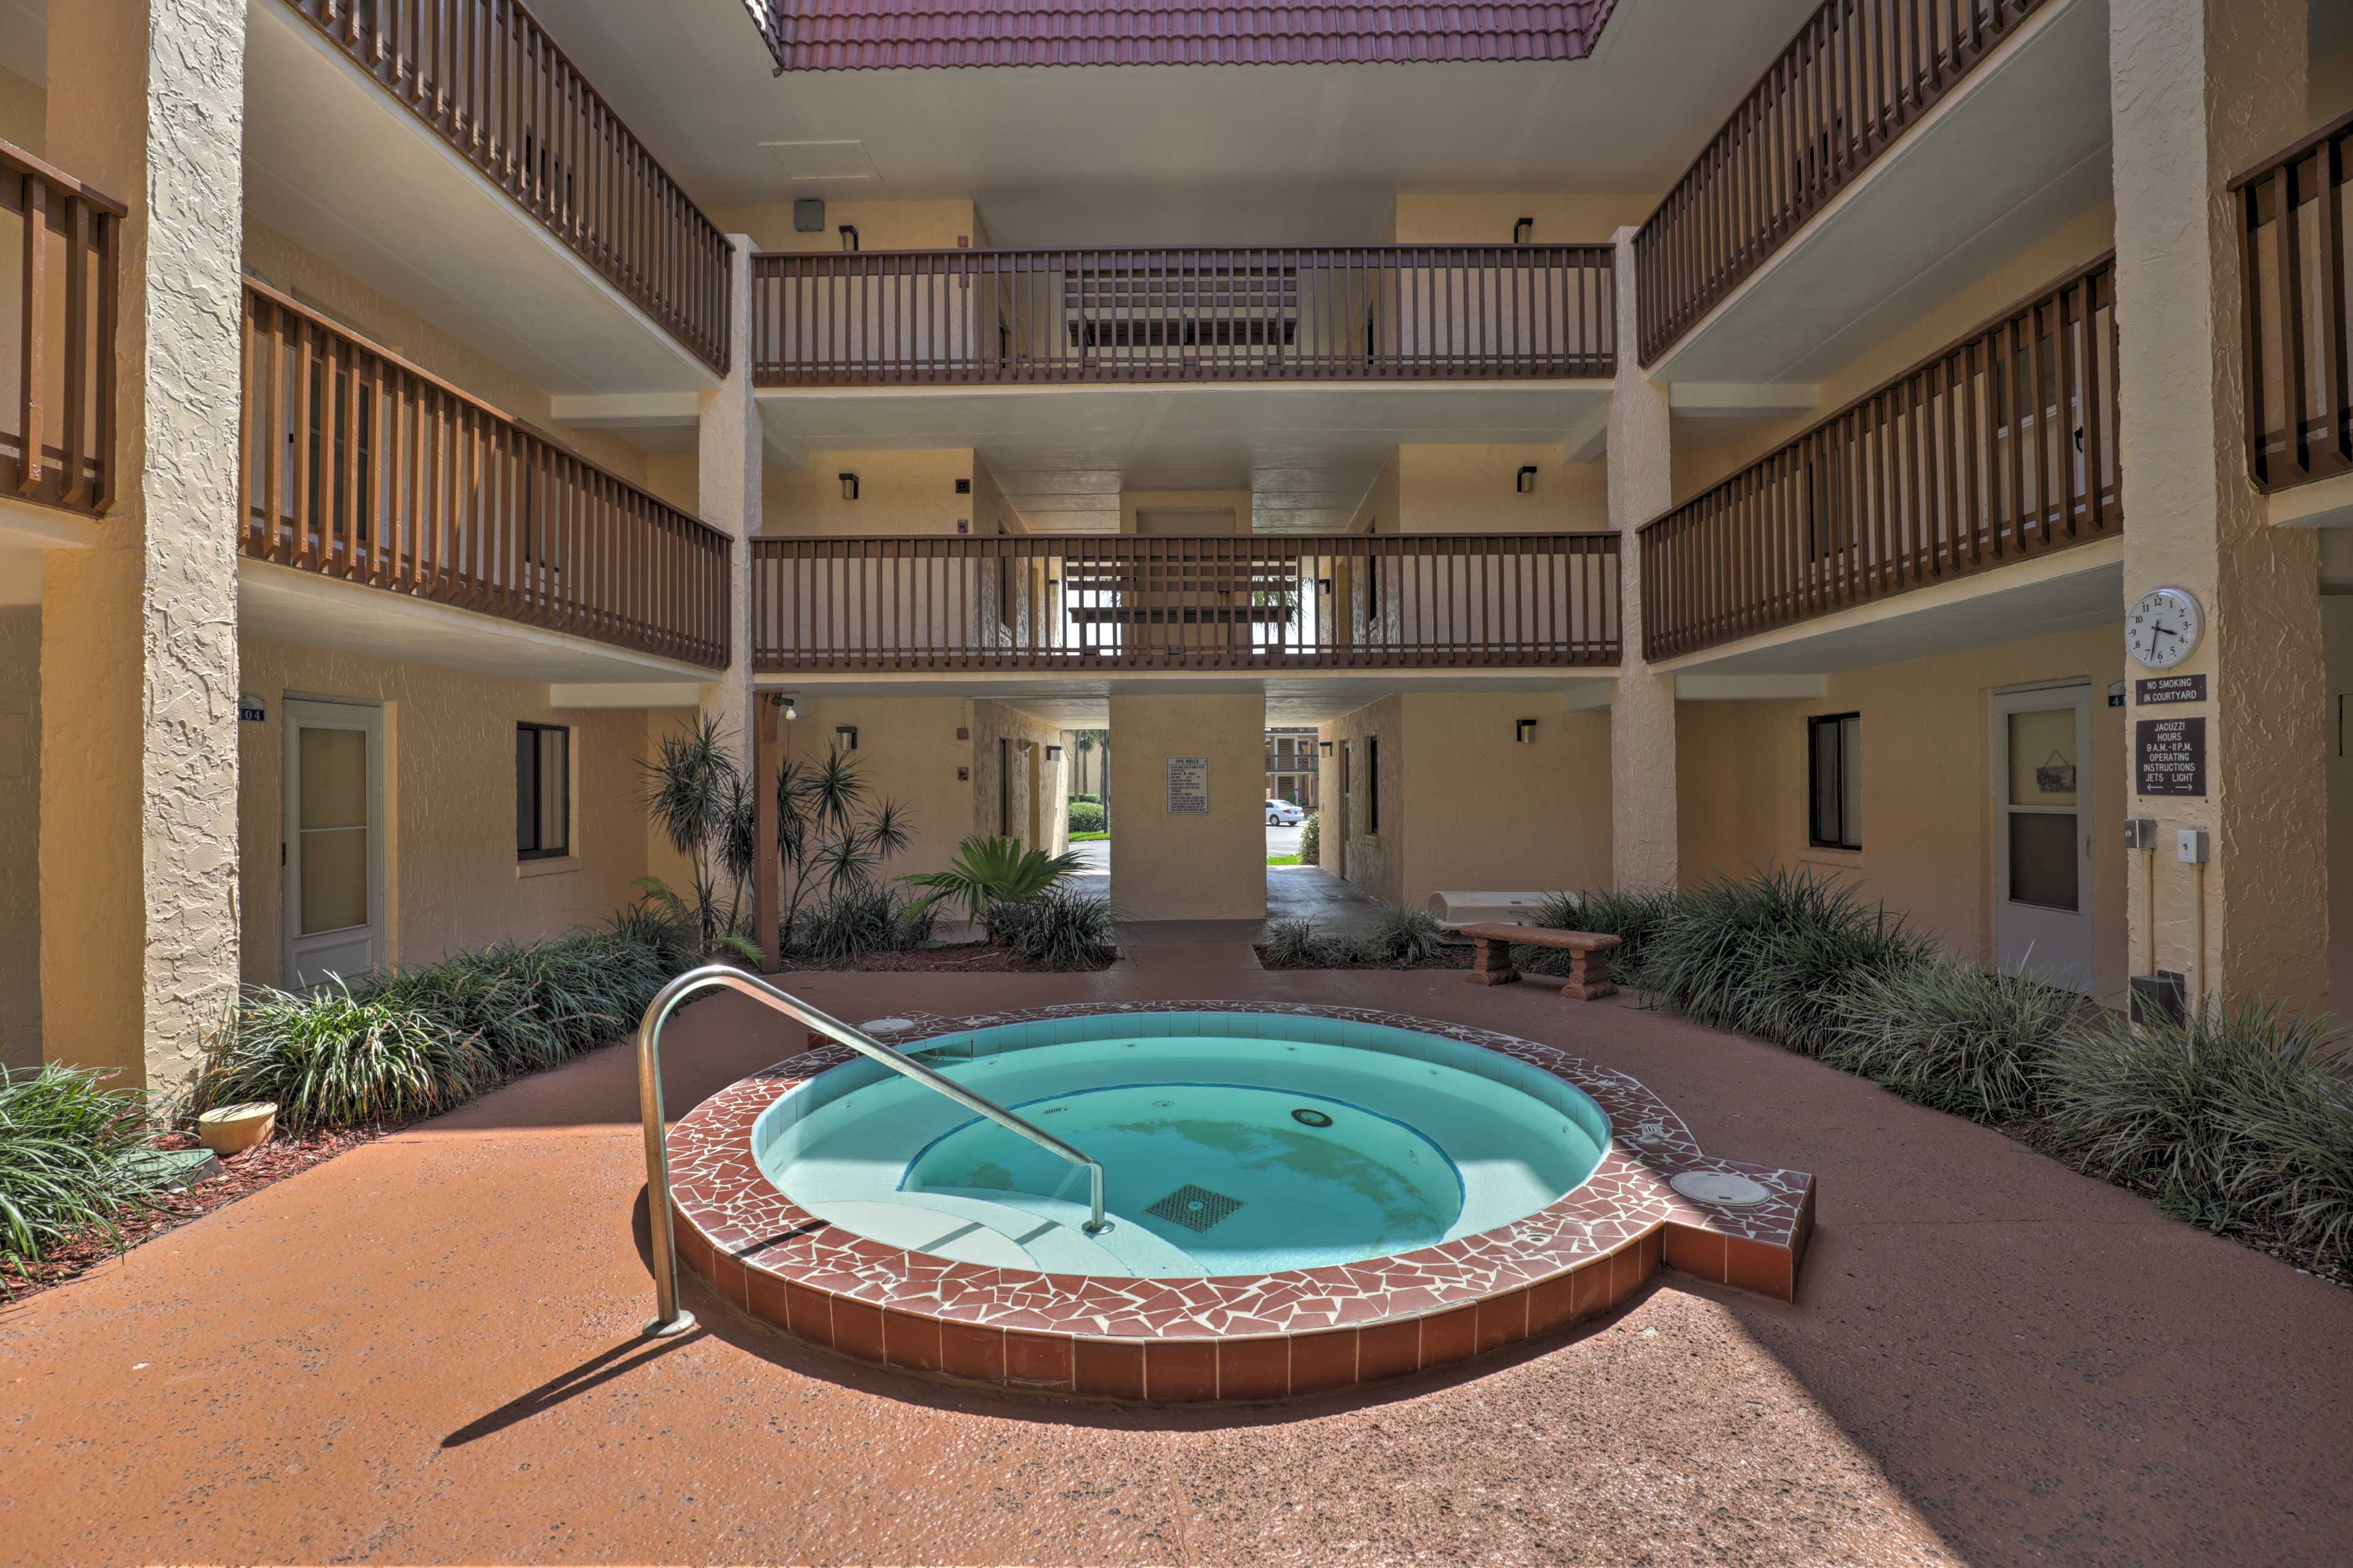 5 hot tubs are situated in the middle of each building.